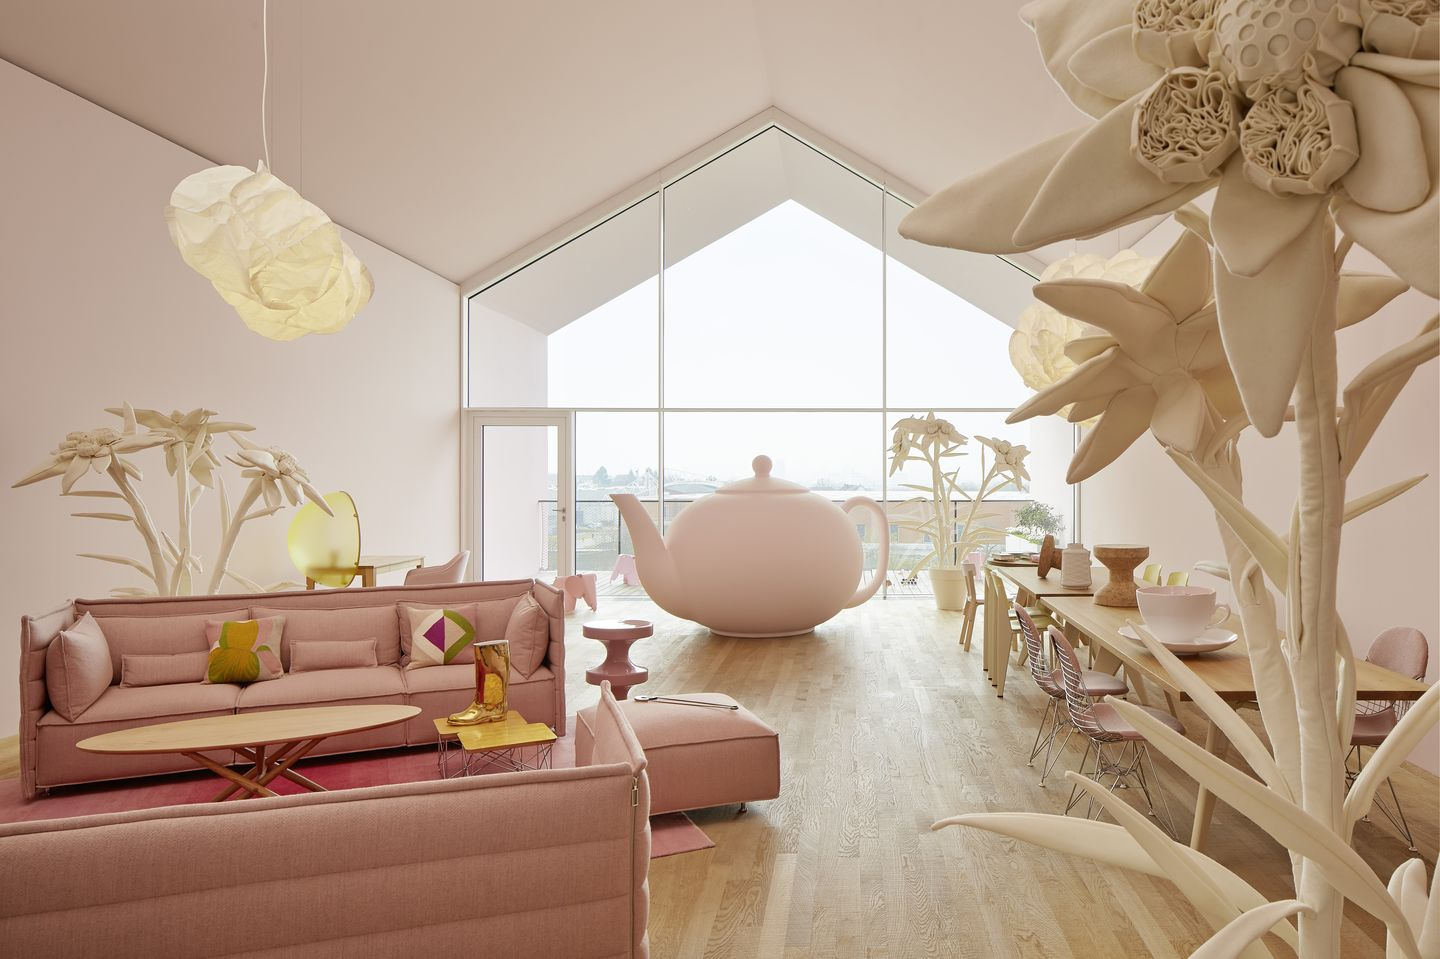 Vitra  India Mahdavi transforms the loft into Alices